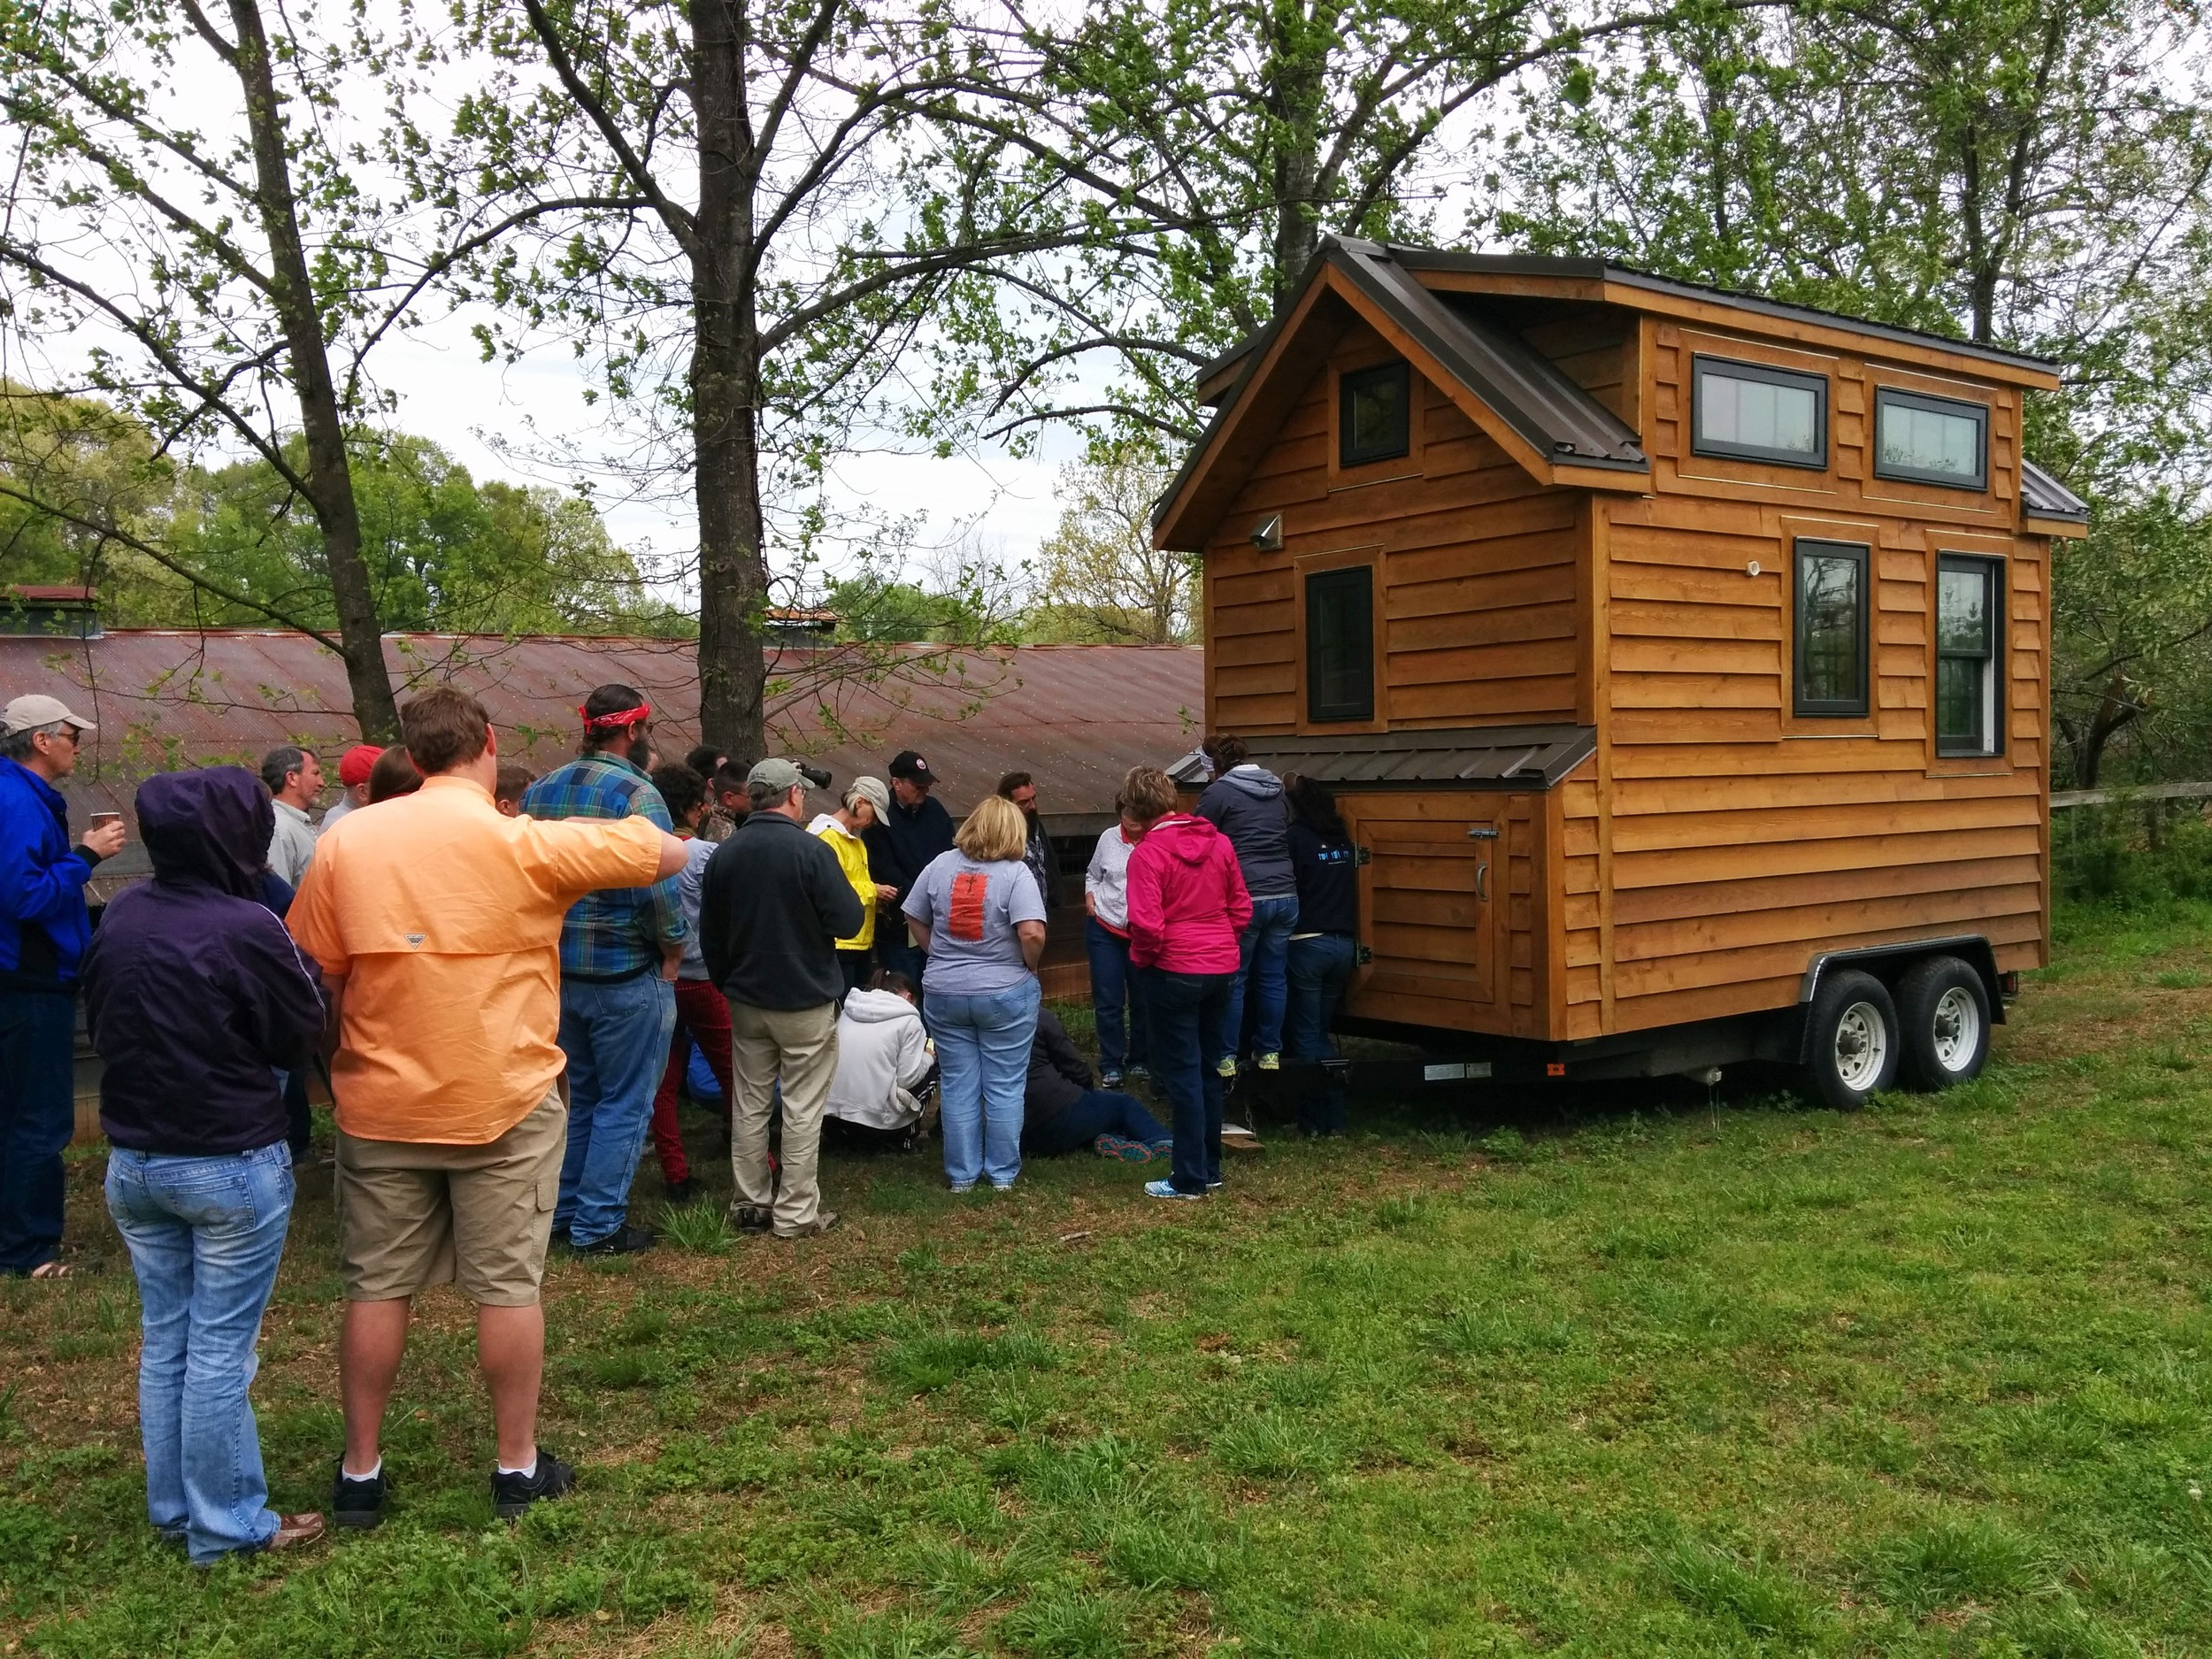 Dan gives everyone an inside look at how the electrical system in the tiny house is wired up and participants can see how everything works on a real tiny house.